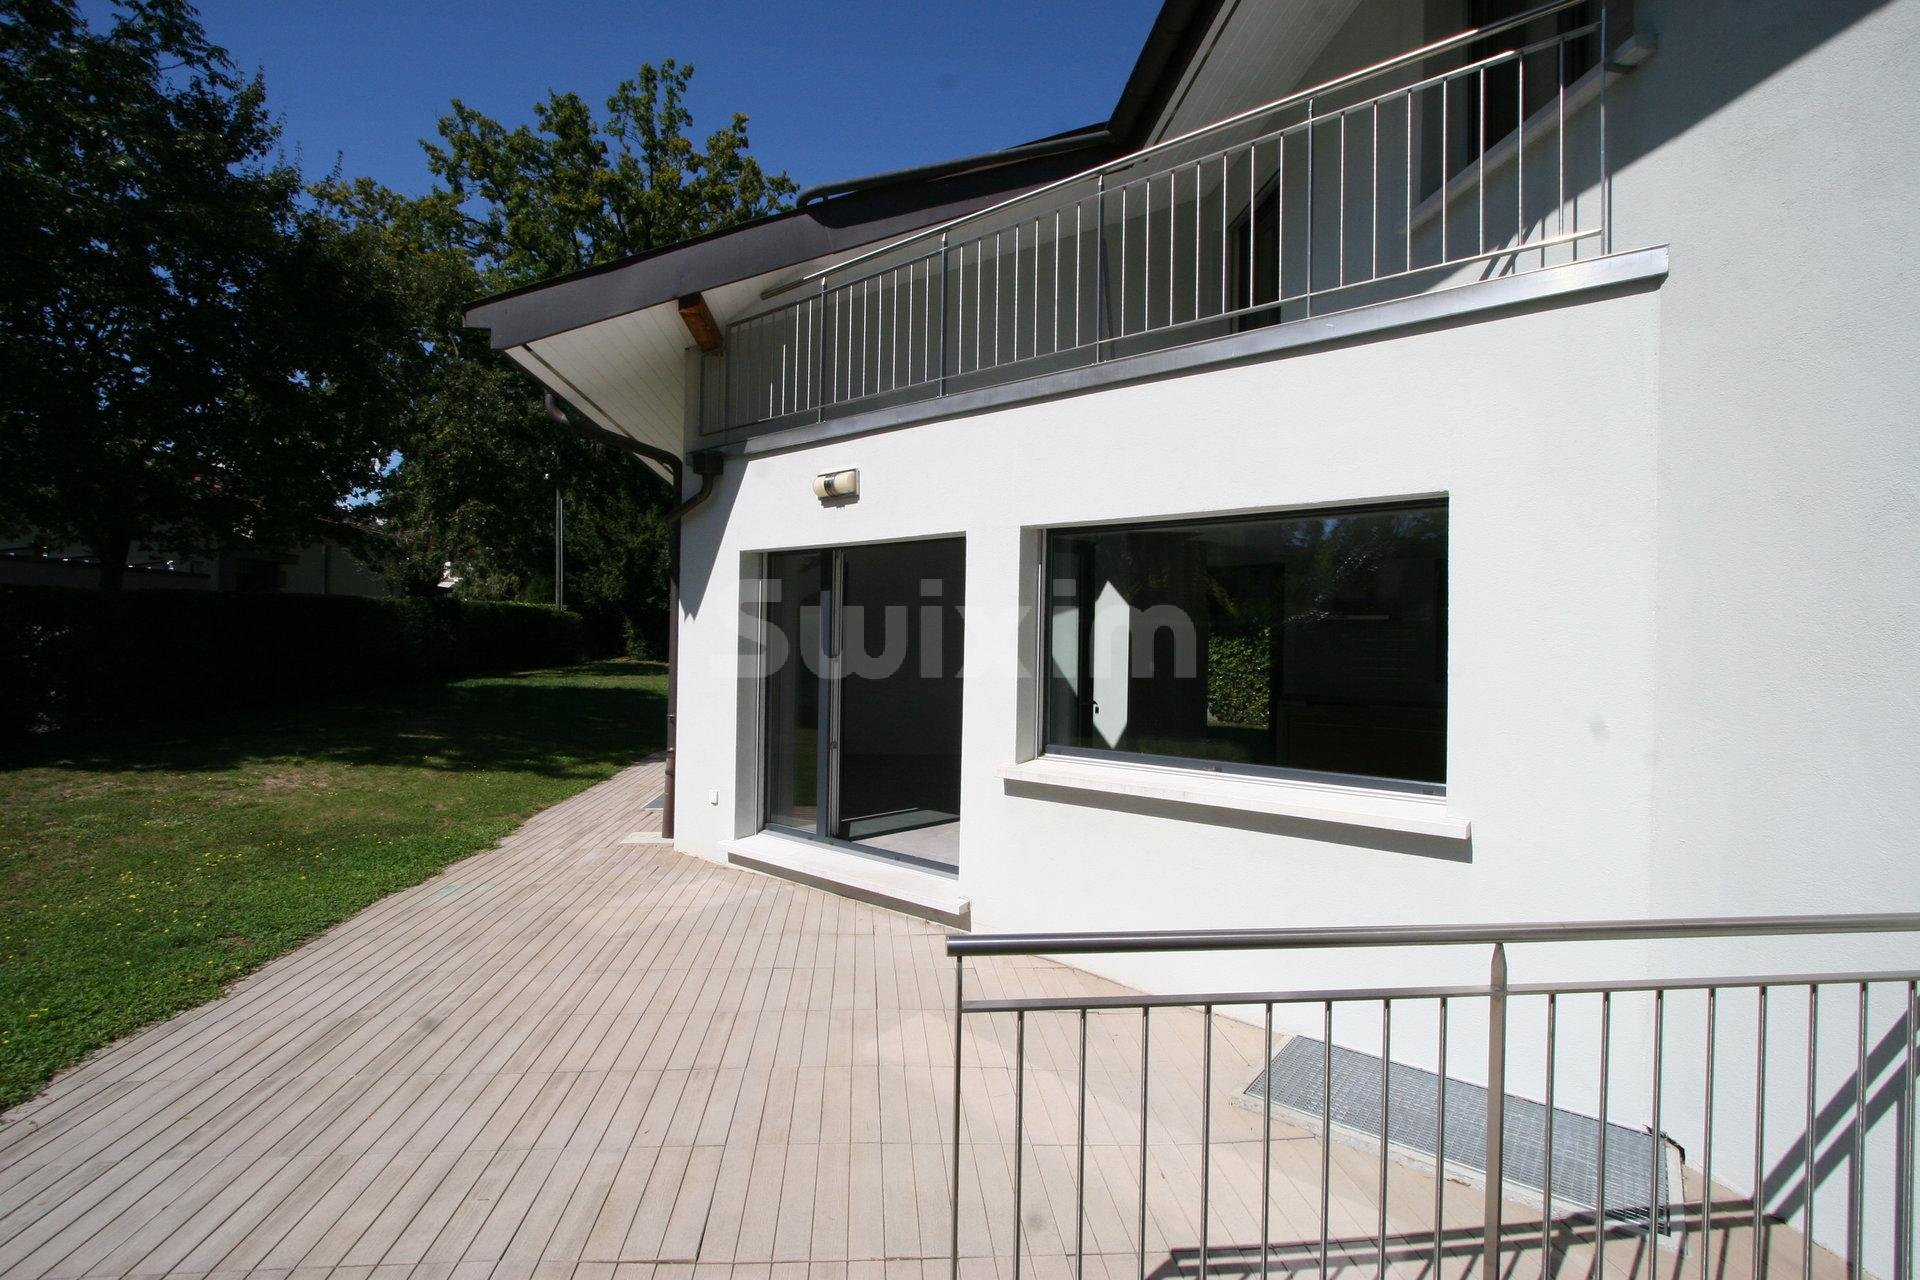 Superbe villa contemporaine